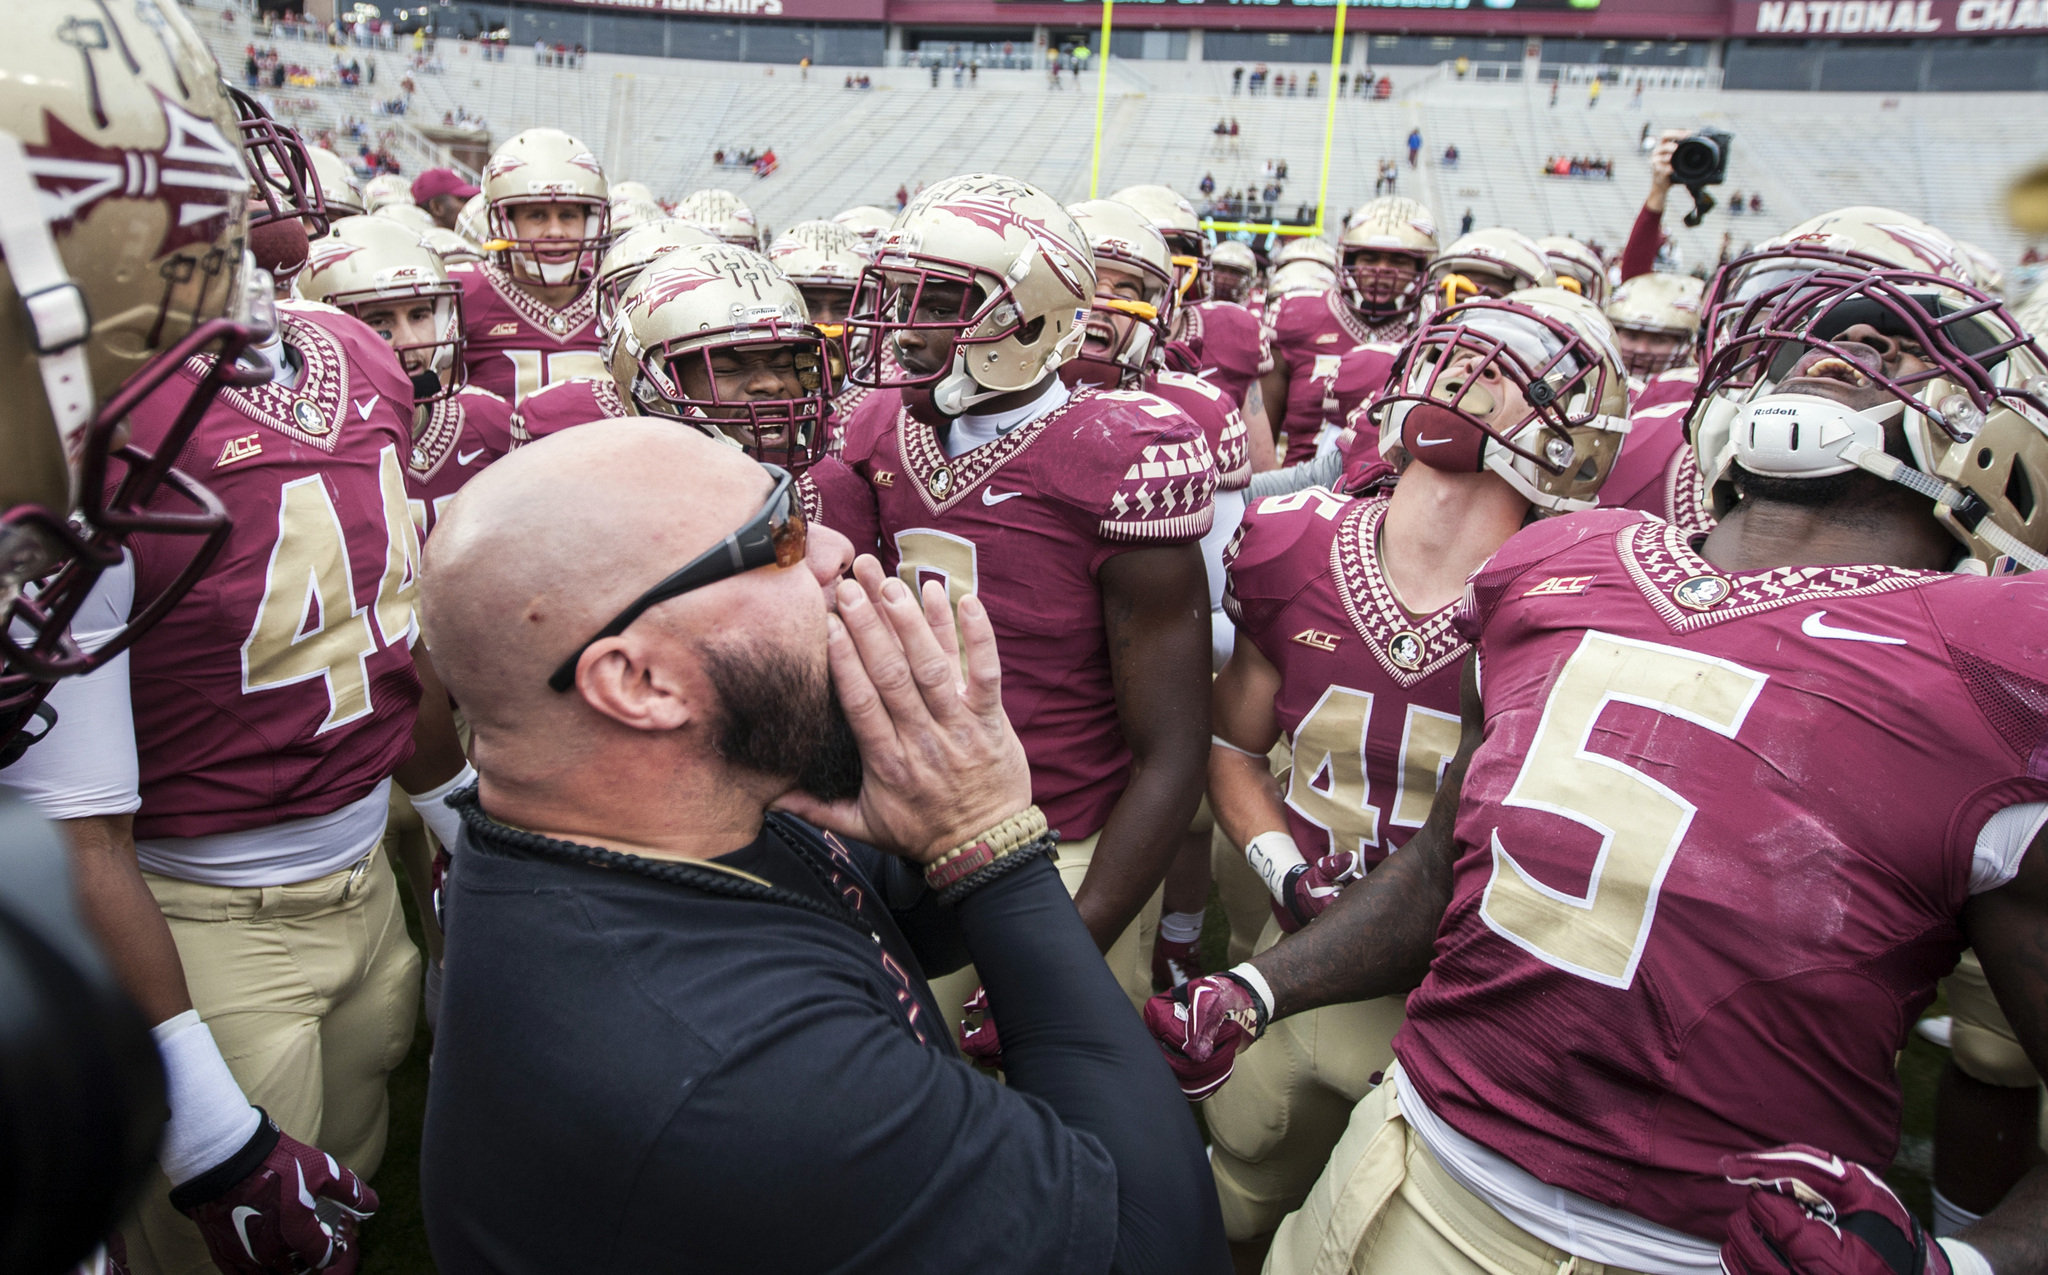 College football aftermath: Florida State's narrow win over Boston College won't hurt College Football Playoff standing